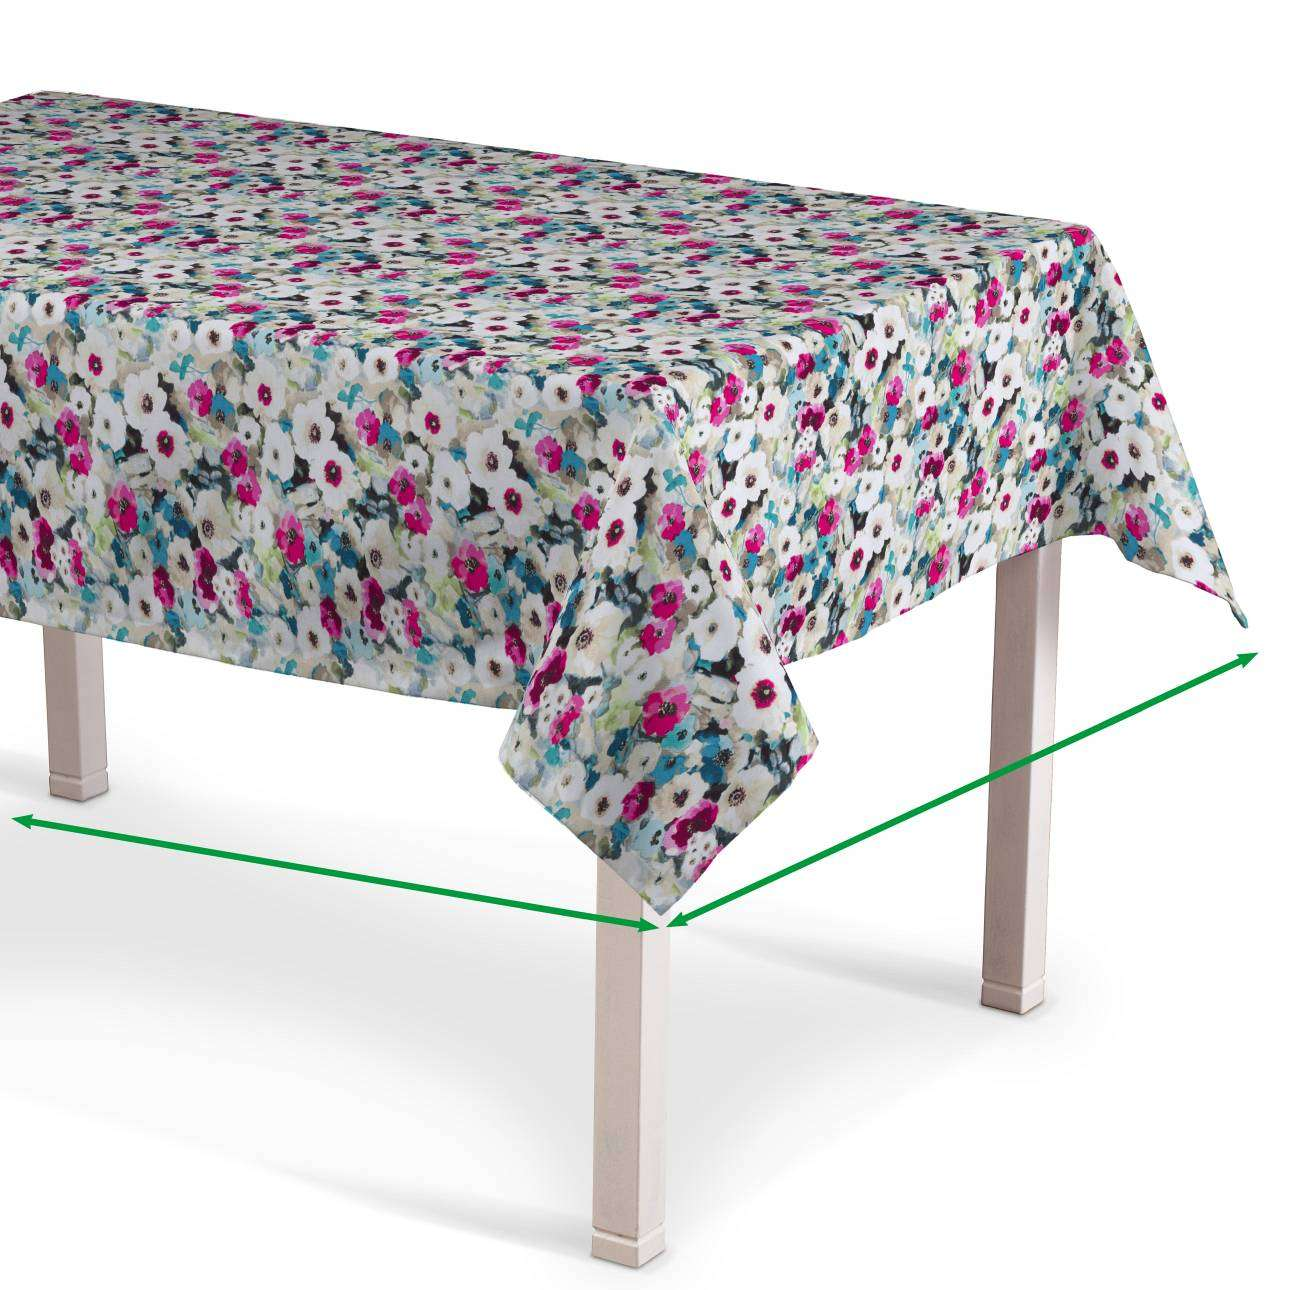 Rectangular tablecloth in collection Monet, fabric: 140-10